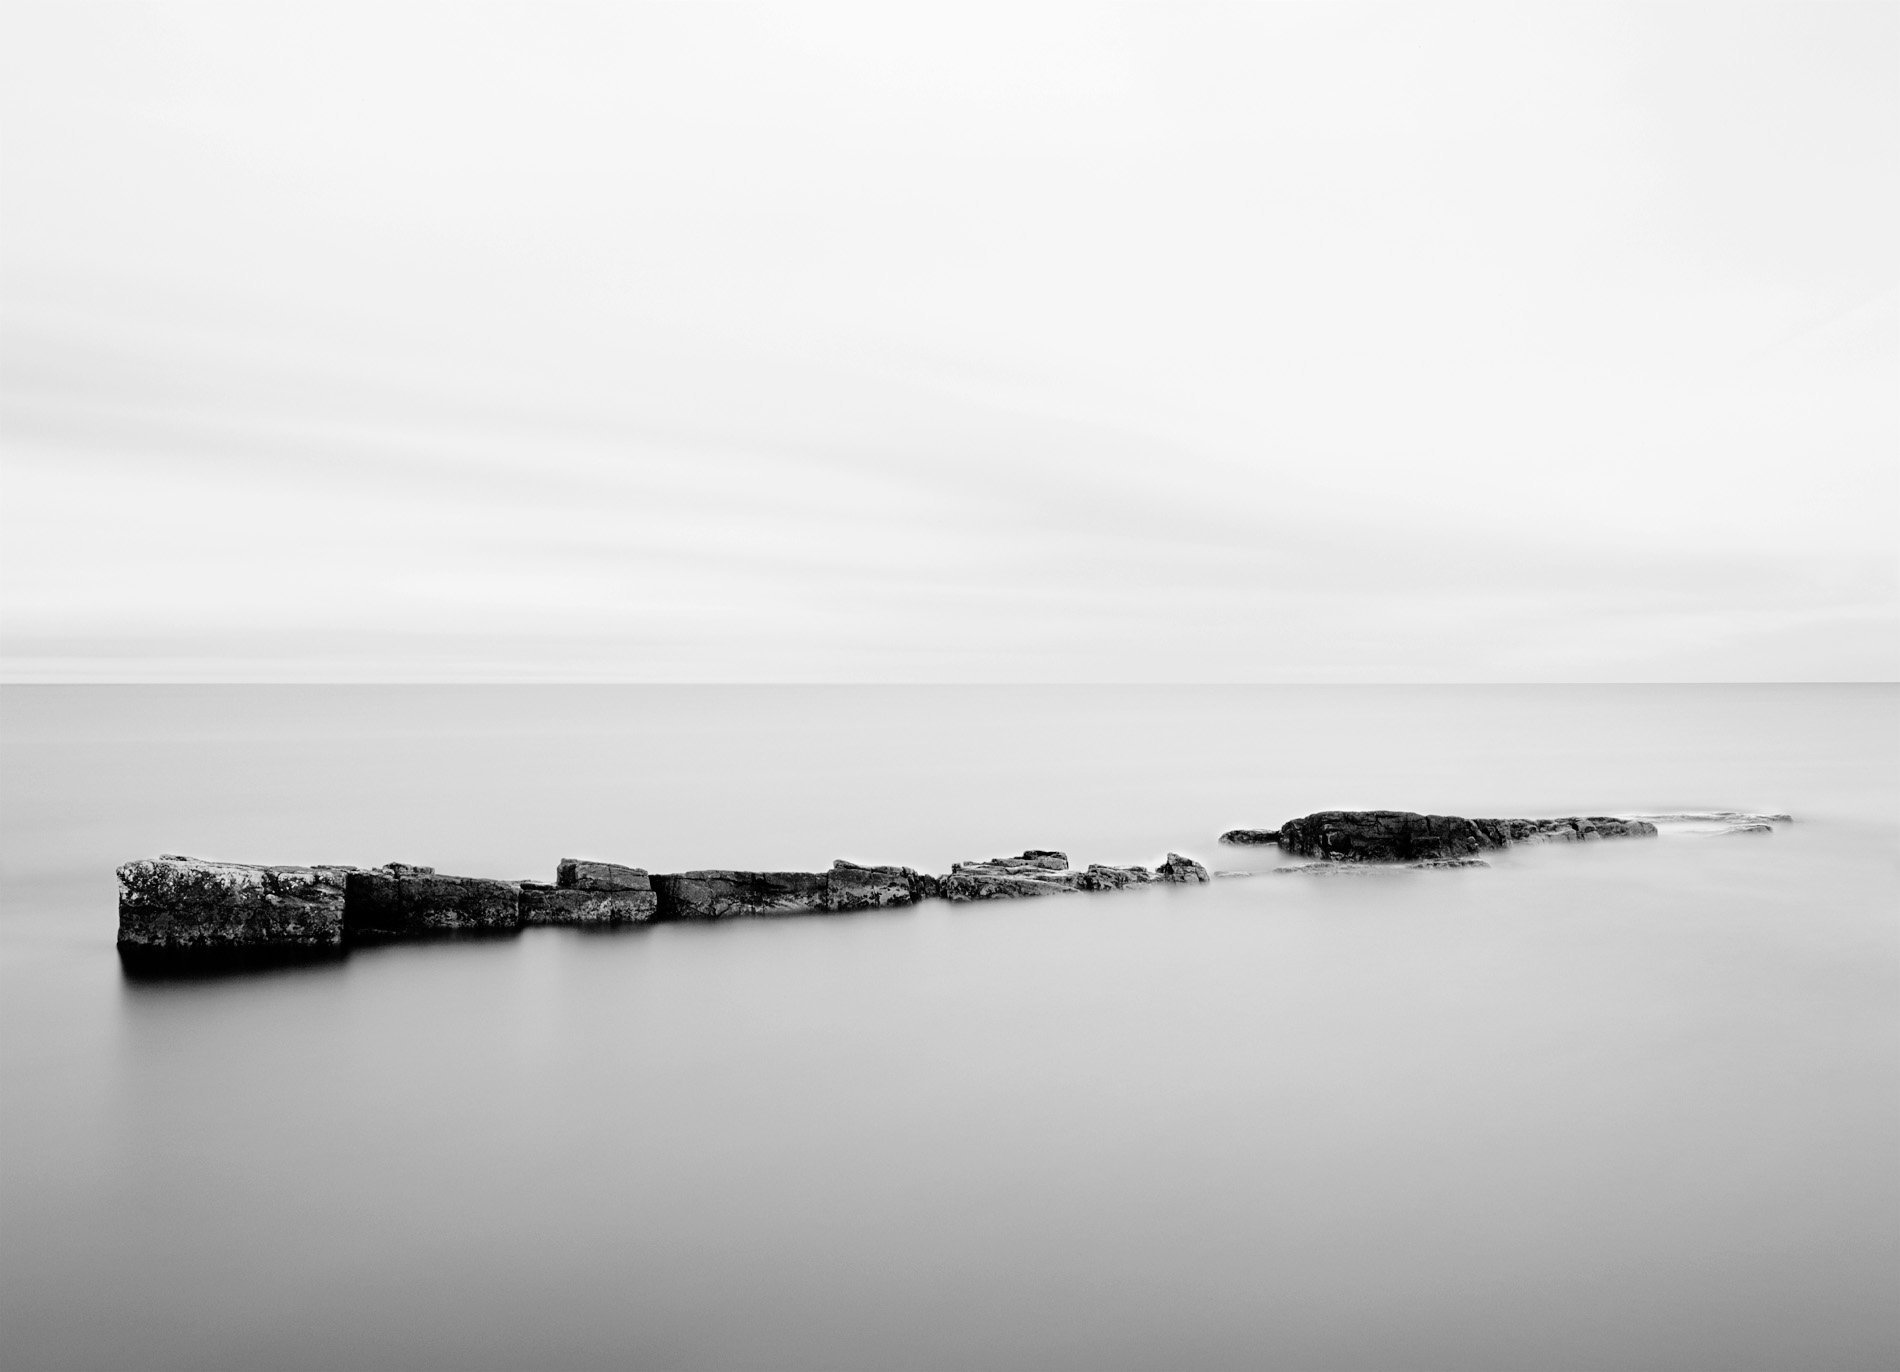 Rocks-morning-coastline-baltic-sea-copyright-Kenneth-Rimm.jpg